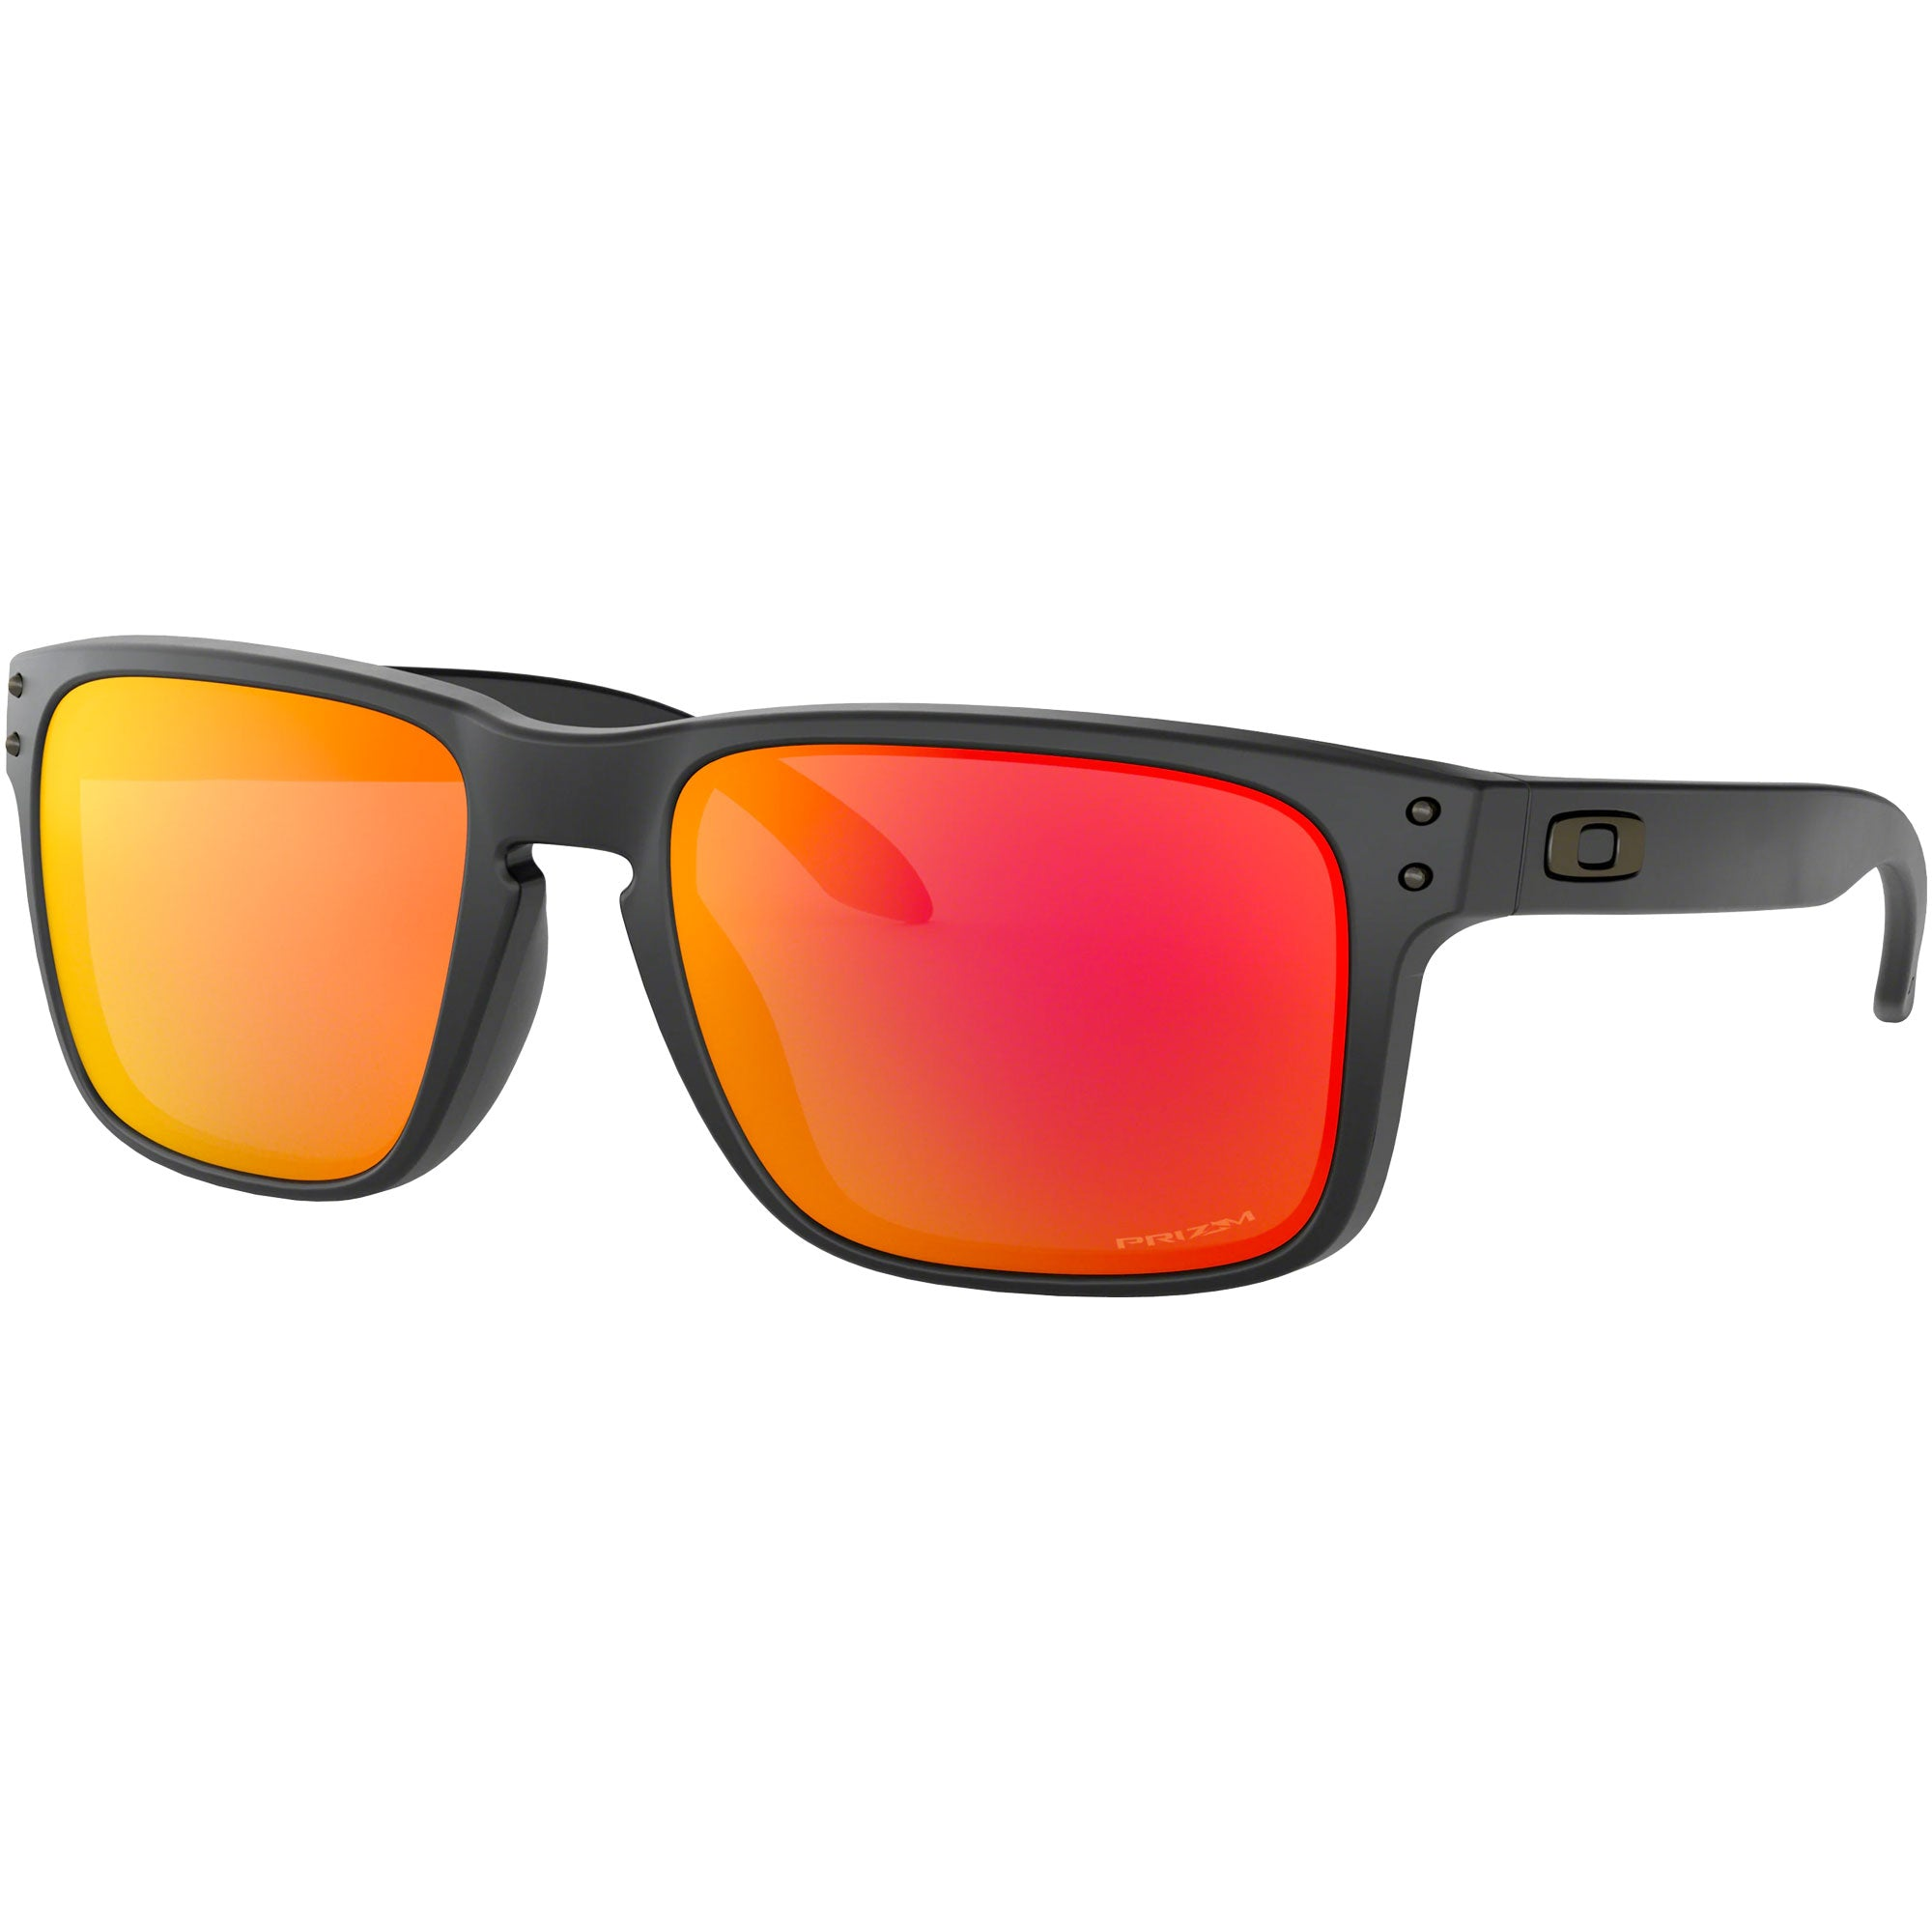 Oakley Holbrook Men's Sunglasses - Matte Black/Prizm Ruby